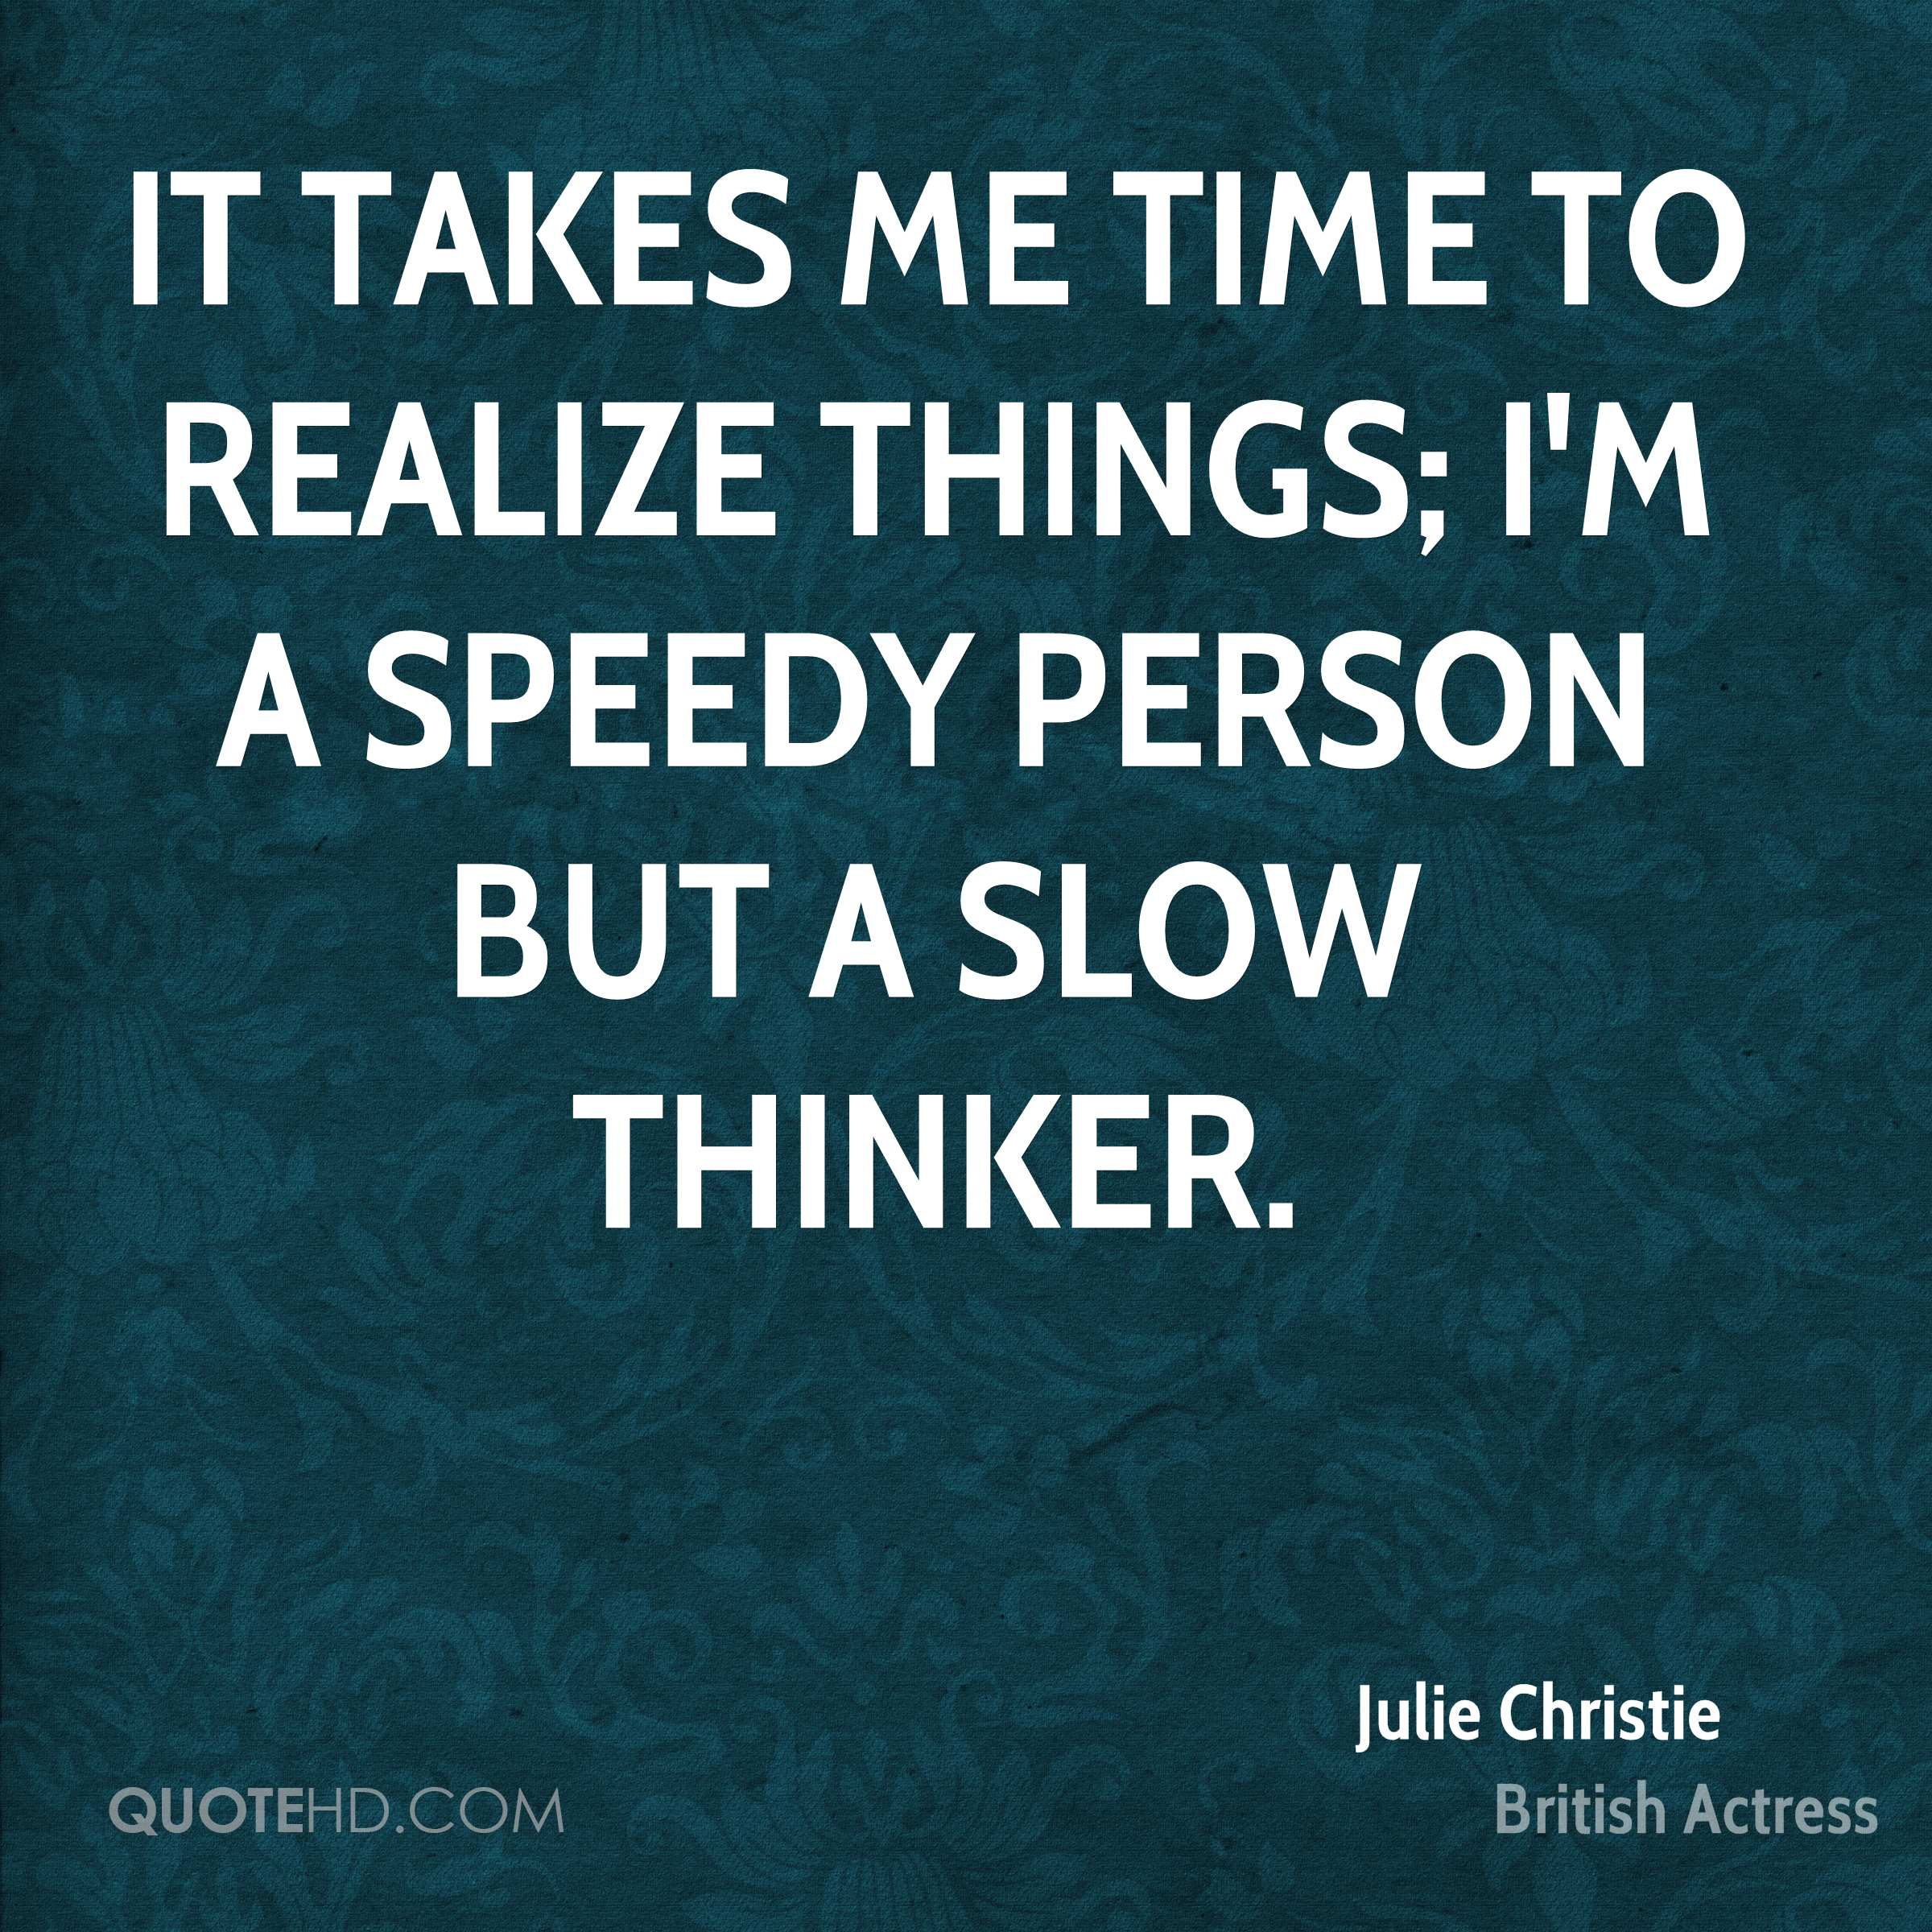 It takes me time to realize things; I'm a speedy person but a slow thinker.